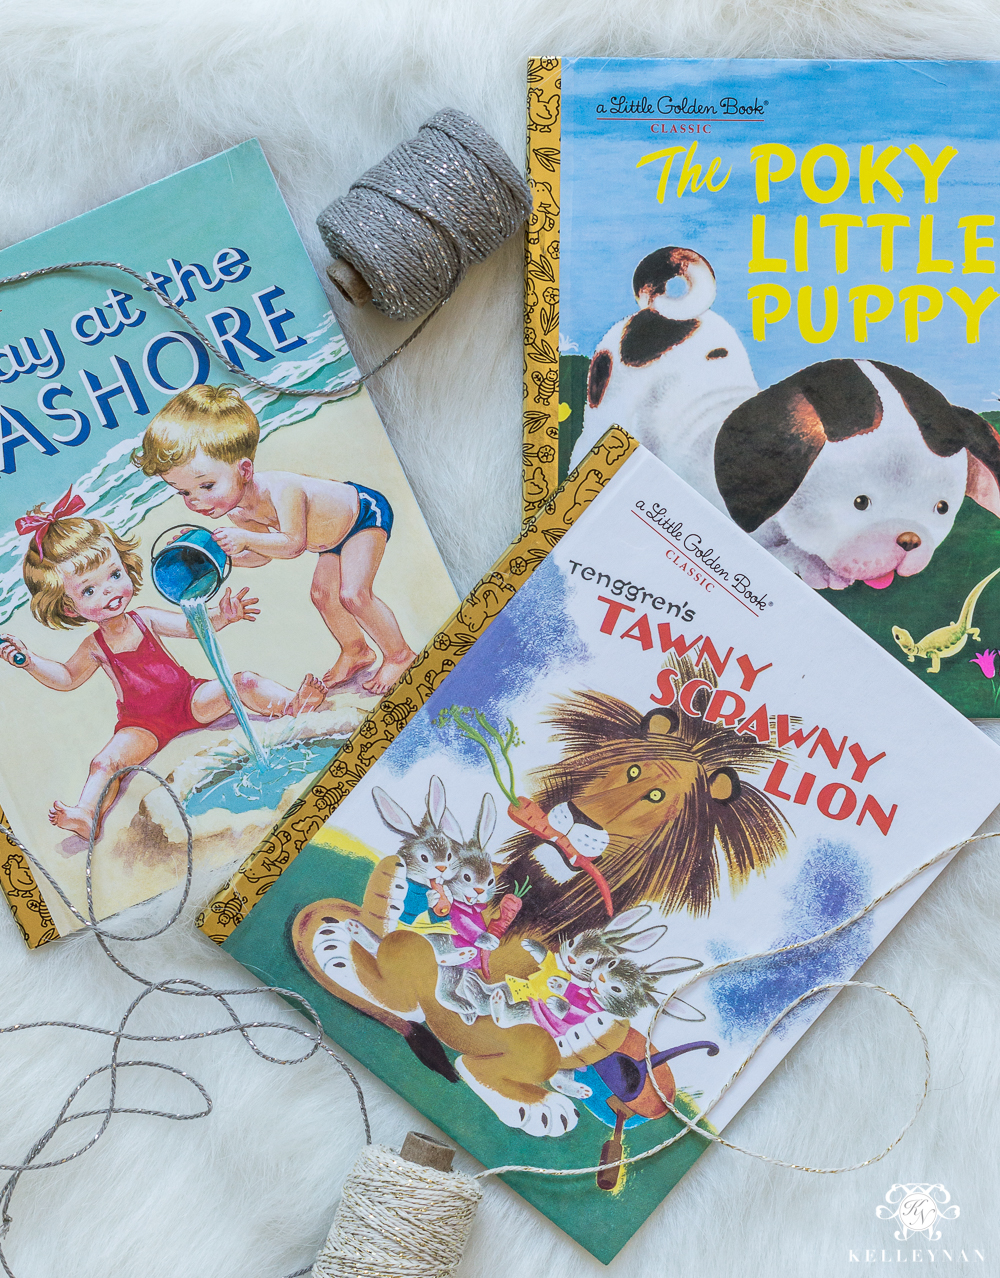 Little golden books as a perfect child neighbor gift